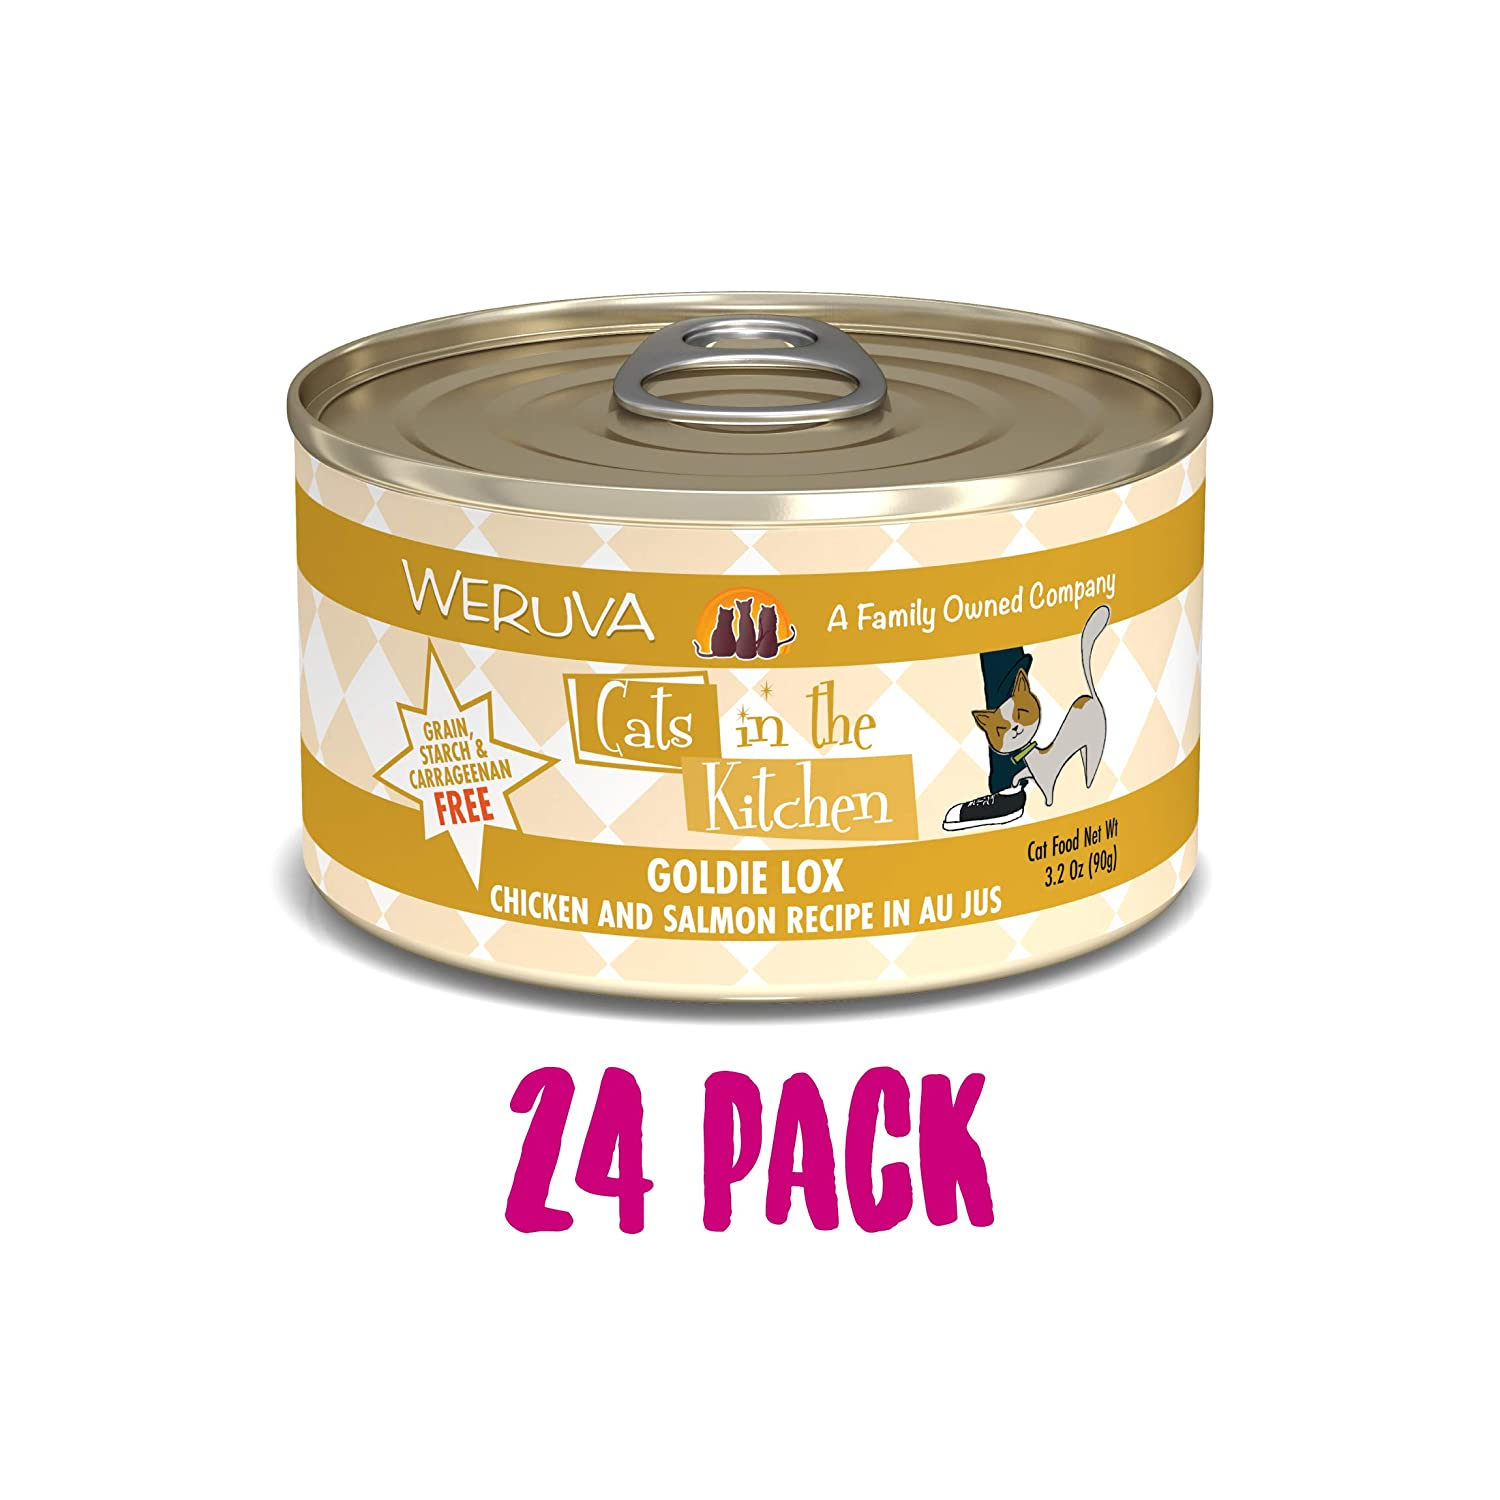 3.2-Ounce Can (Pack of 24) Cats in the Kitchen goldie Lox 24 3.2-Ounce